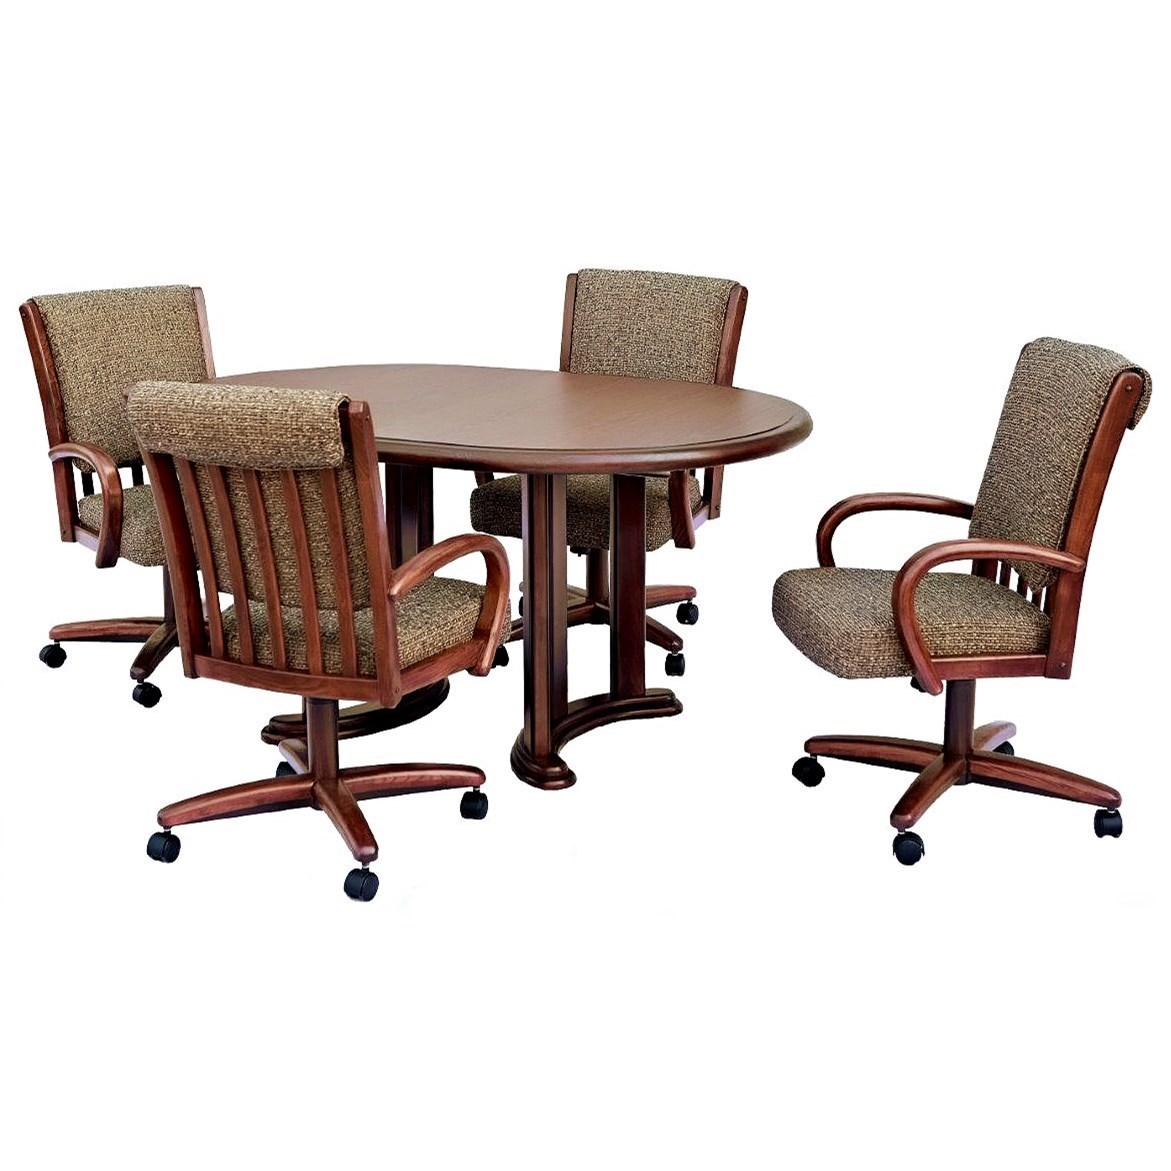 Chromcraft Custom Dining 5 Piece Dining Set With Chairs On Casters